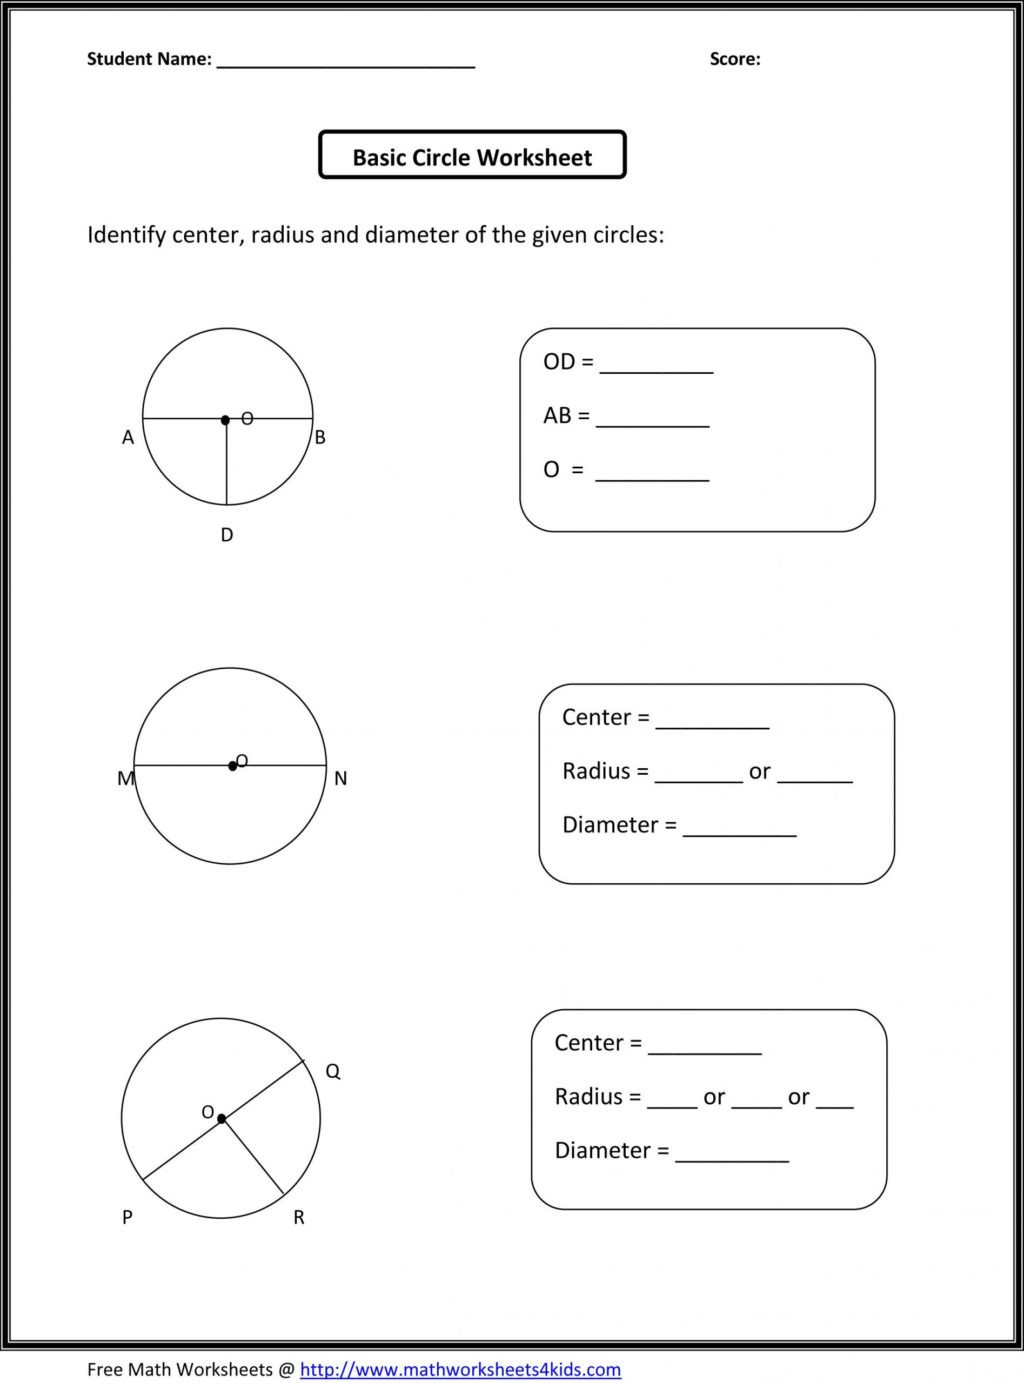 Geometry Worksheets 10th Grade Worksheet Third Grade Geometry 3rd Worksheets Printable